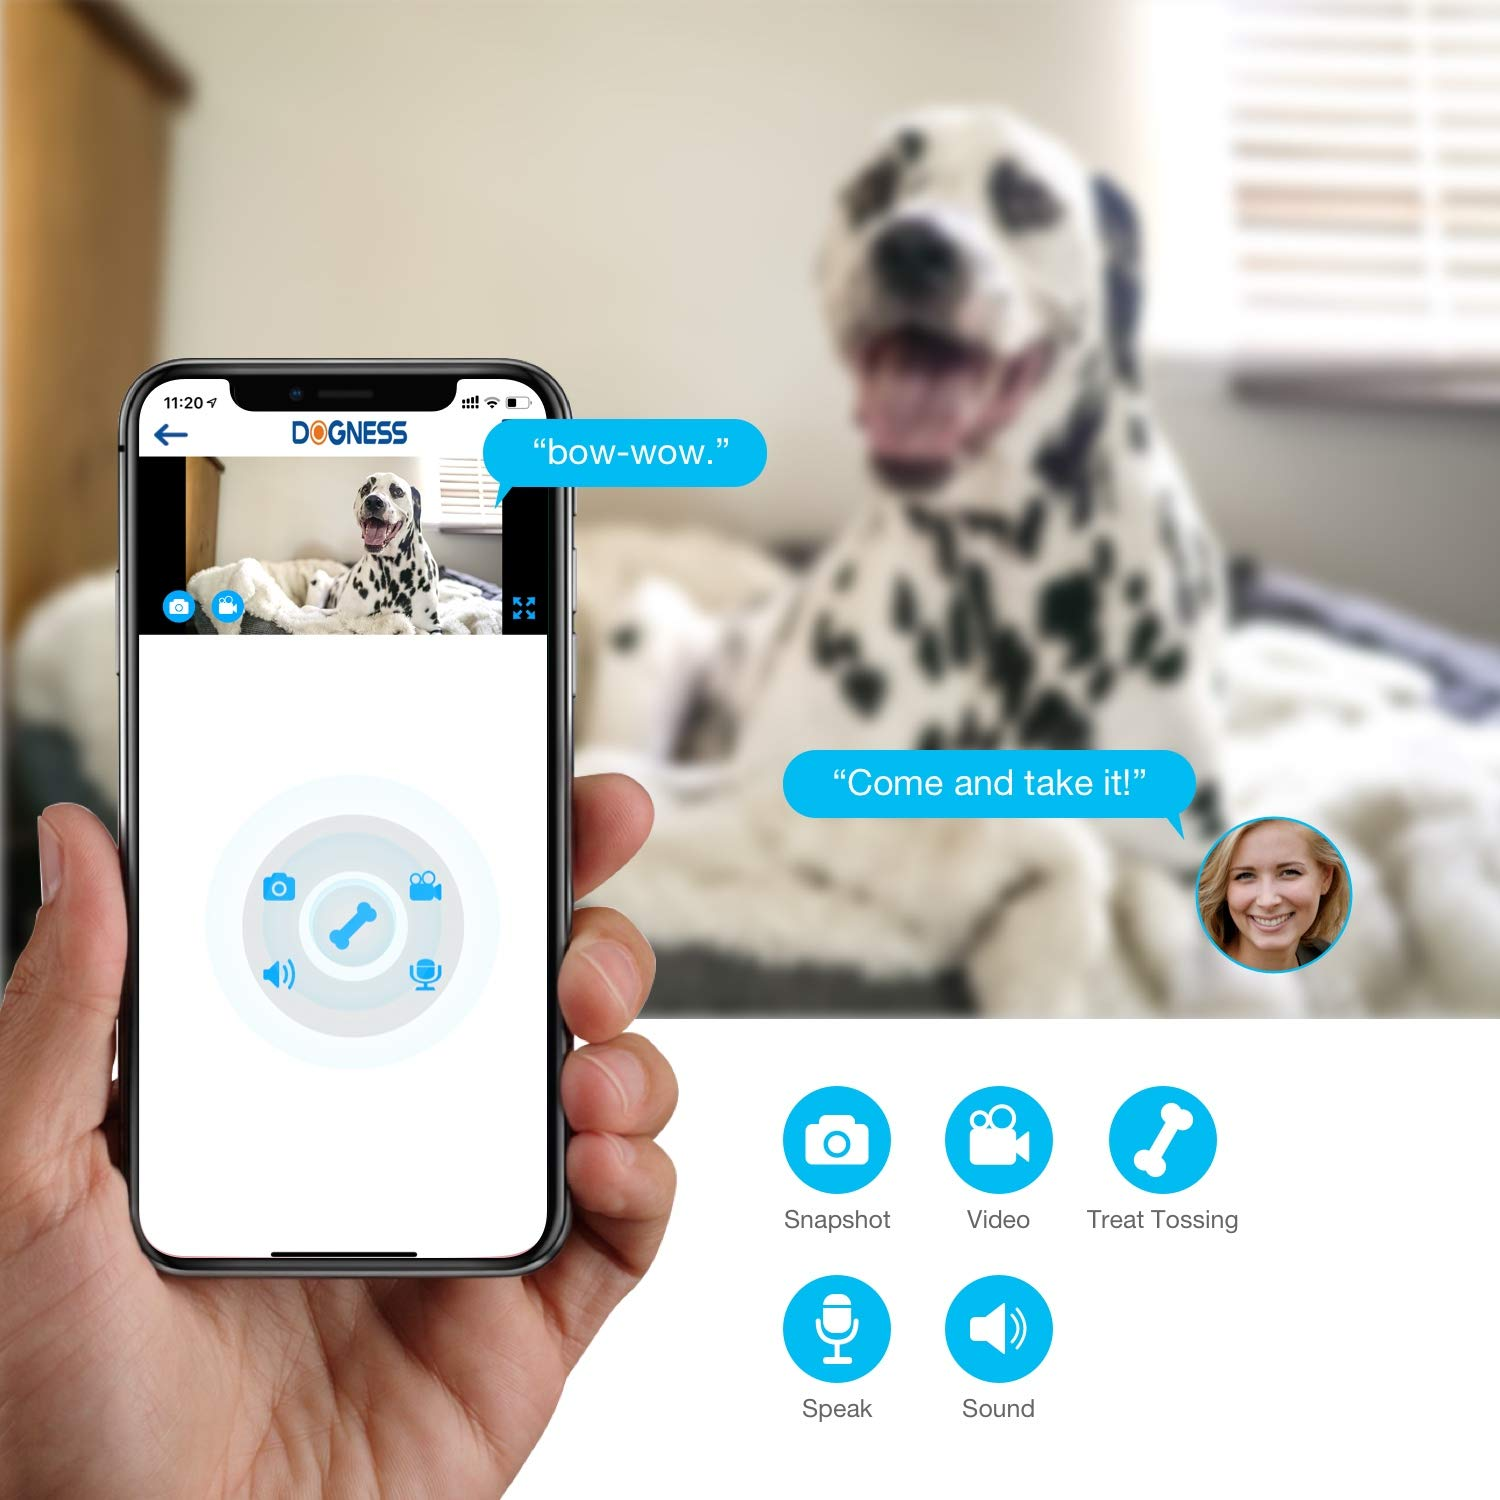 Vbroad Smart Pet Camera Treat Dispenser, WiFi Remote Camera Monitor 720P HD Night Vision Video with 2-Way Audio Designed for Dogs and Cats, Home Safety Pet Monitor (Android/iOS) by Vbroad (Image #3)